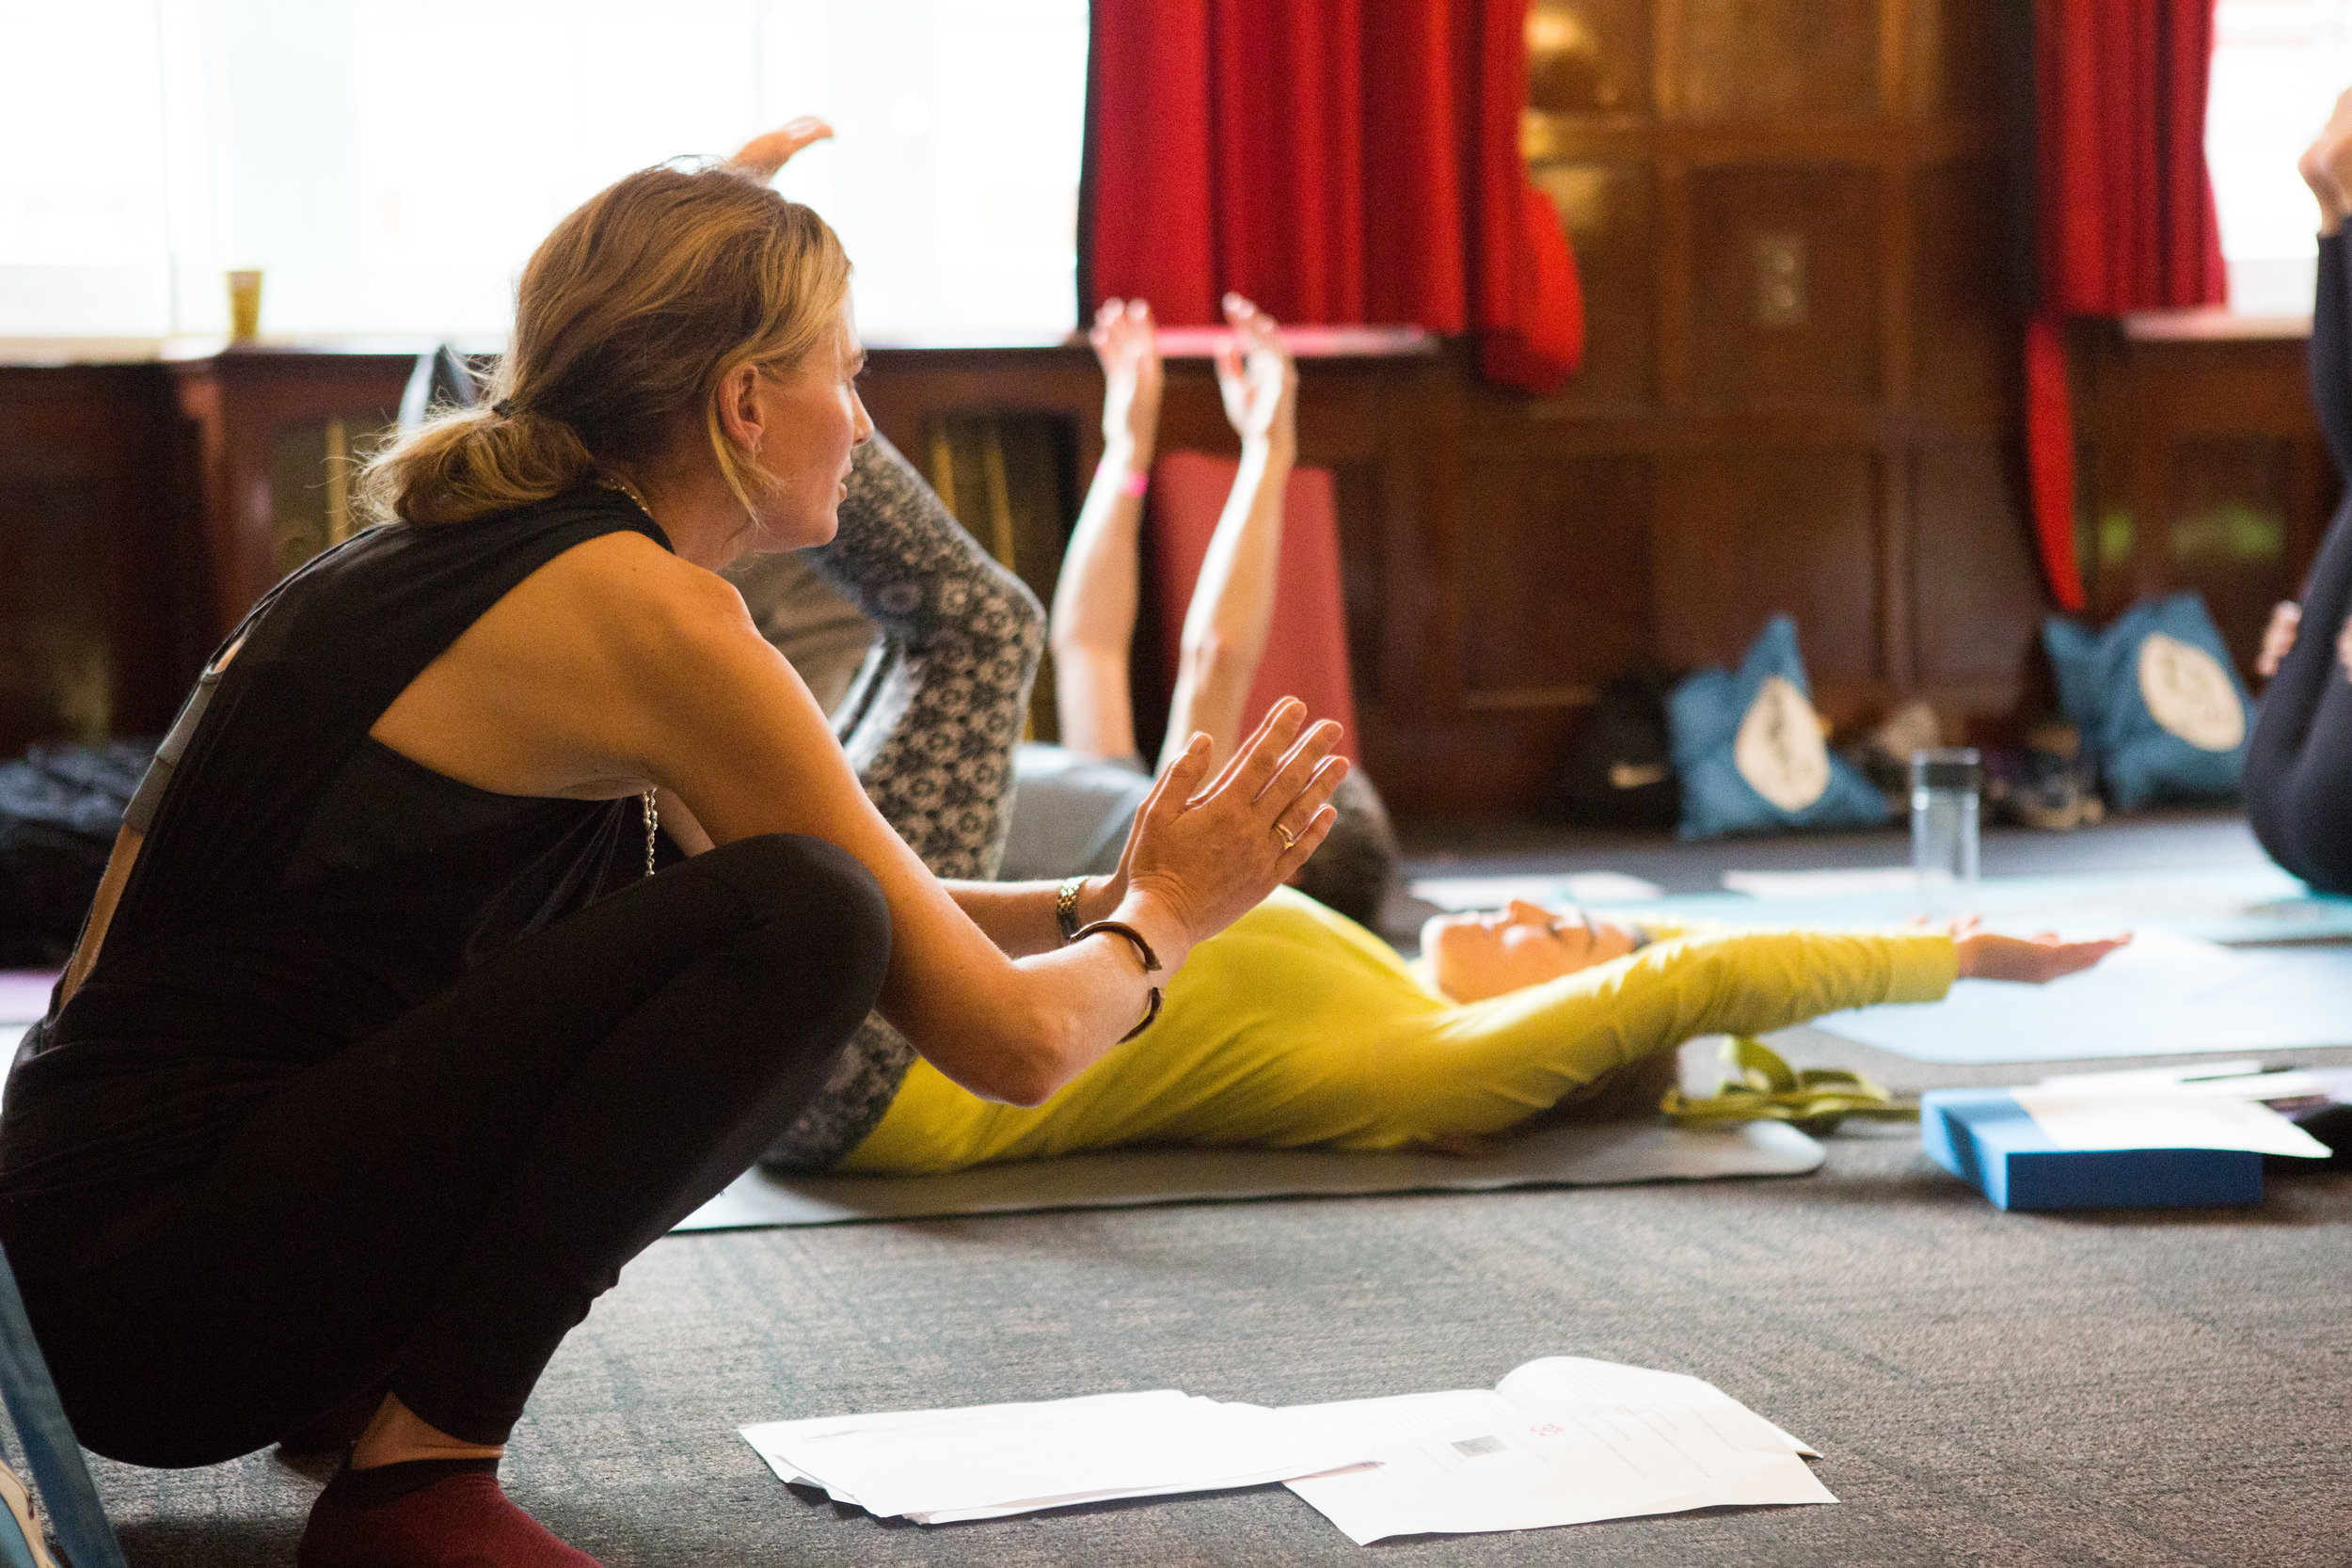 Advanced Yoga therapy trainings - A three year advanced yoga therapy training course continuing in the development of practical therapy skills, pathology models of health and disease, specific application of yoga's methods and tools, and yoga therapy practice management. The next course starts April 2020.